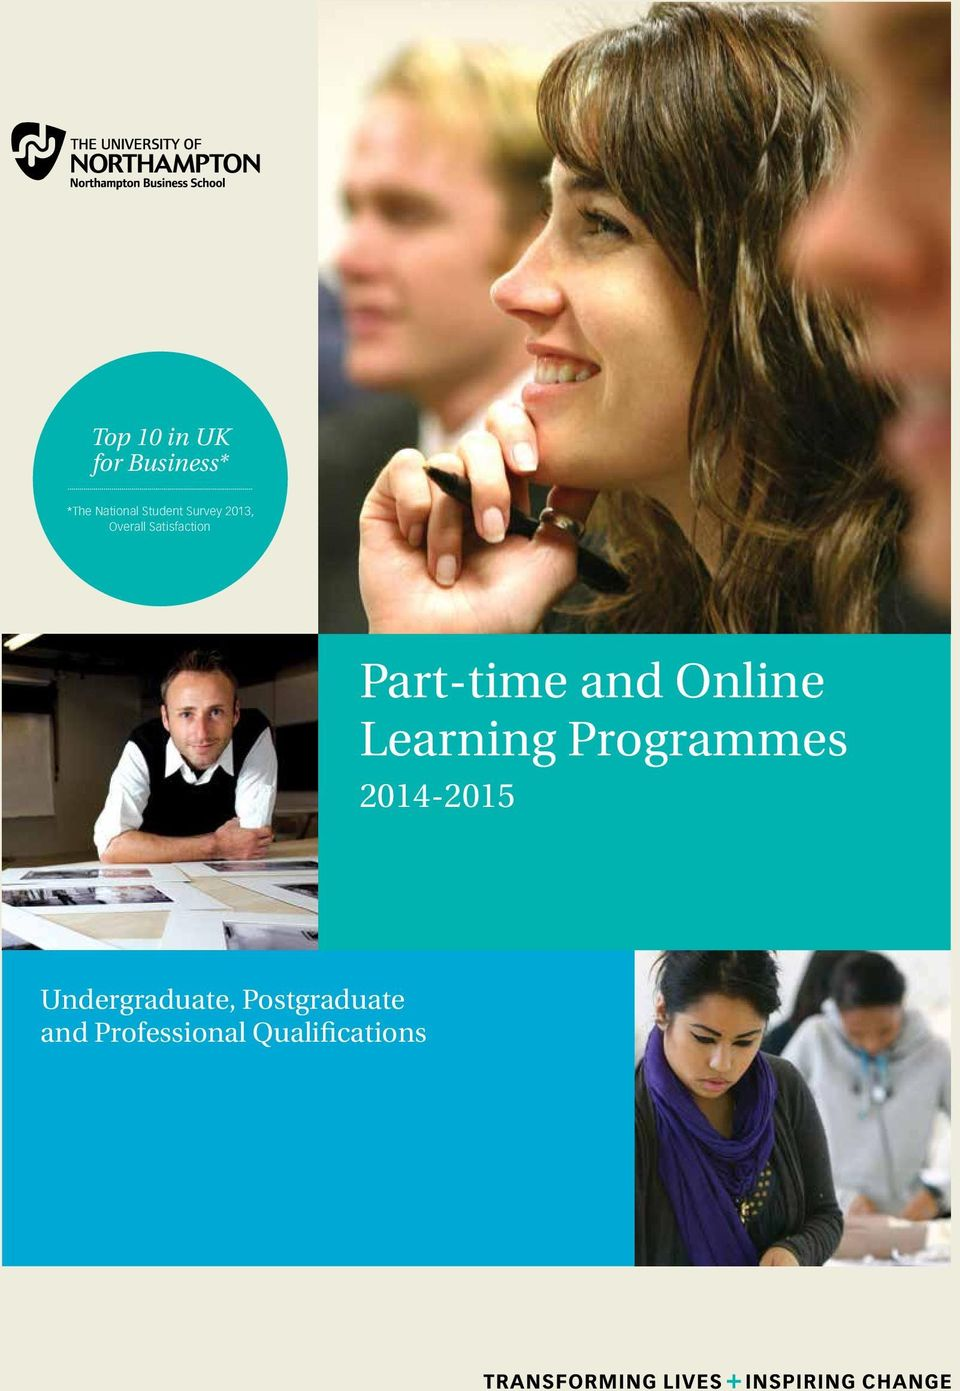 Online Learning Programmes 2014-2015